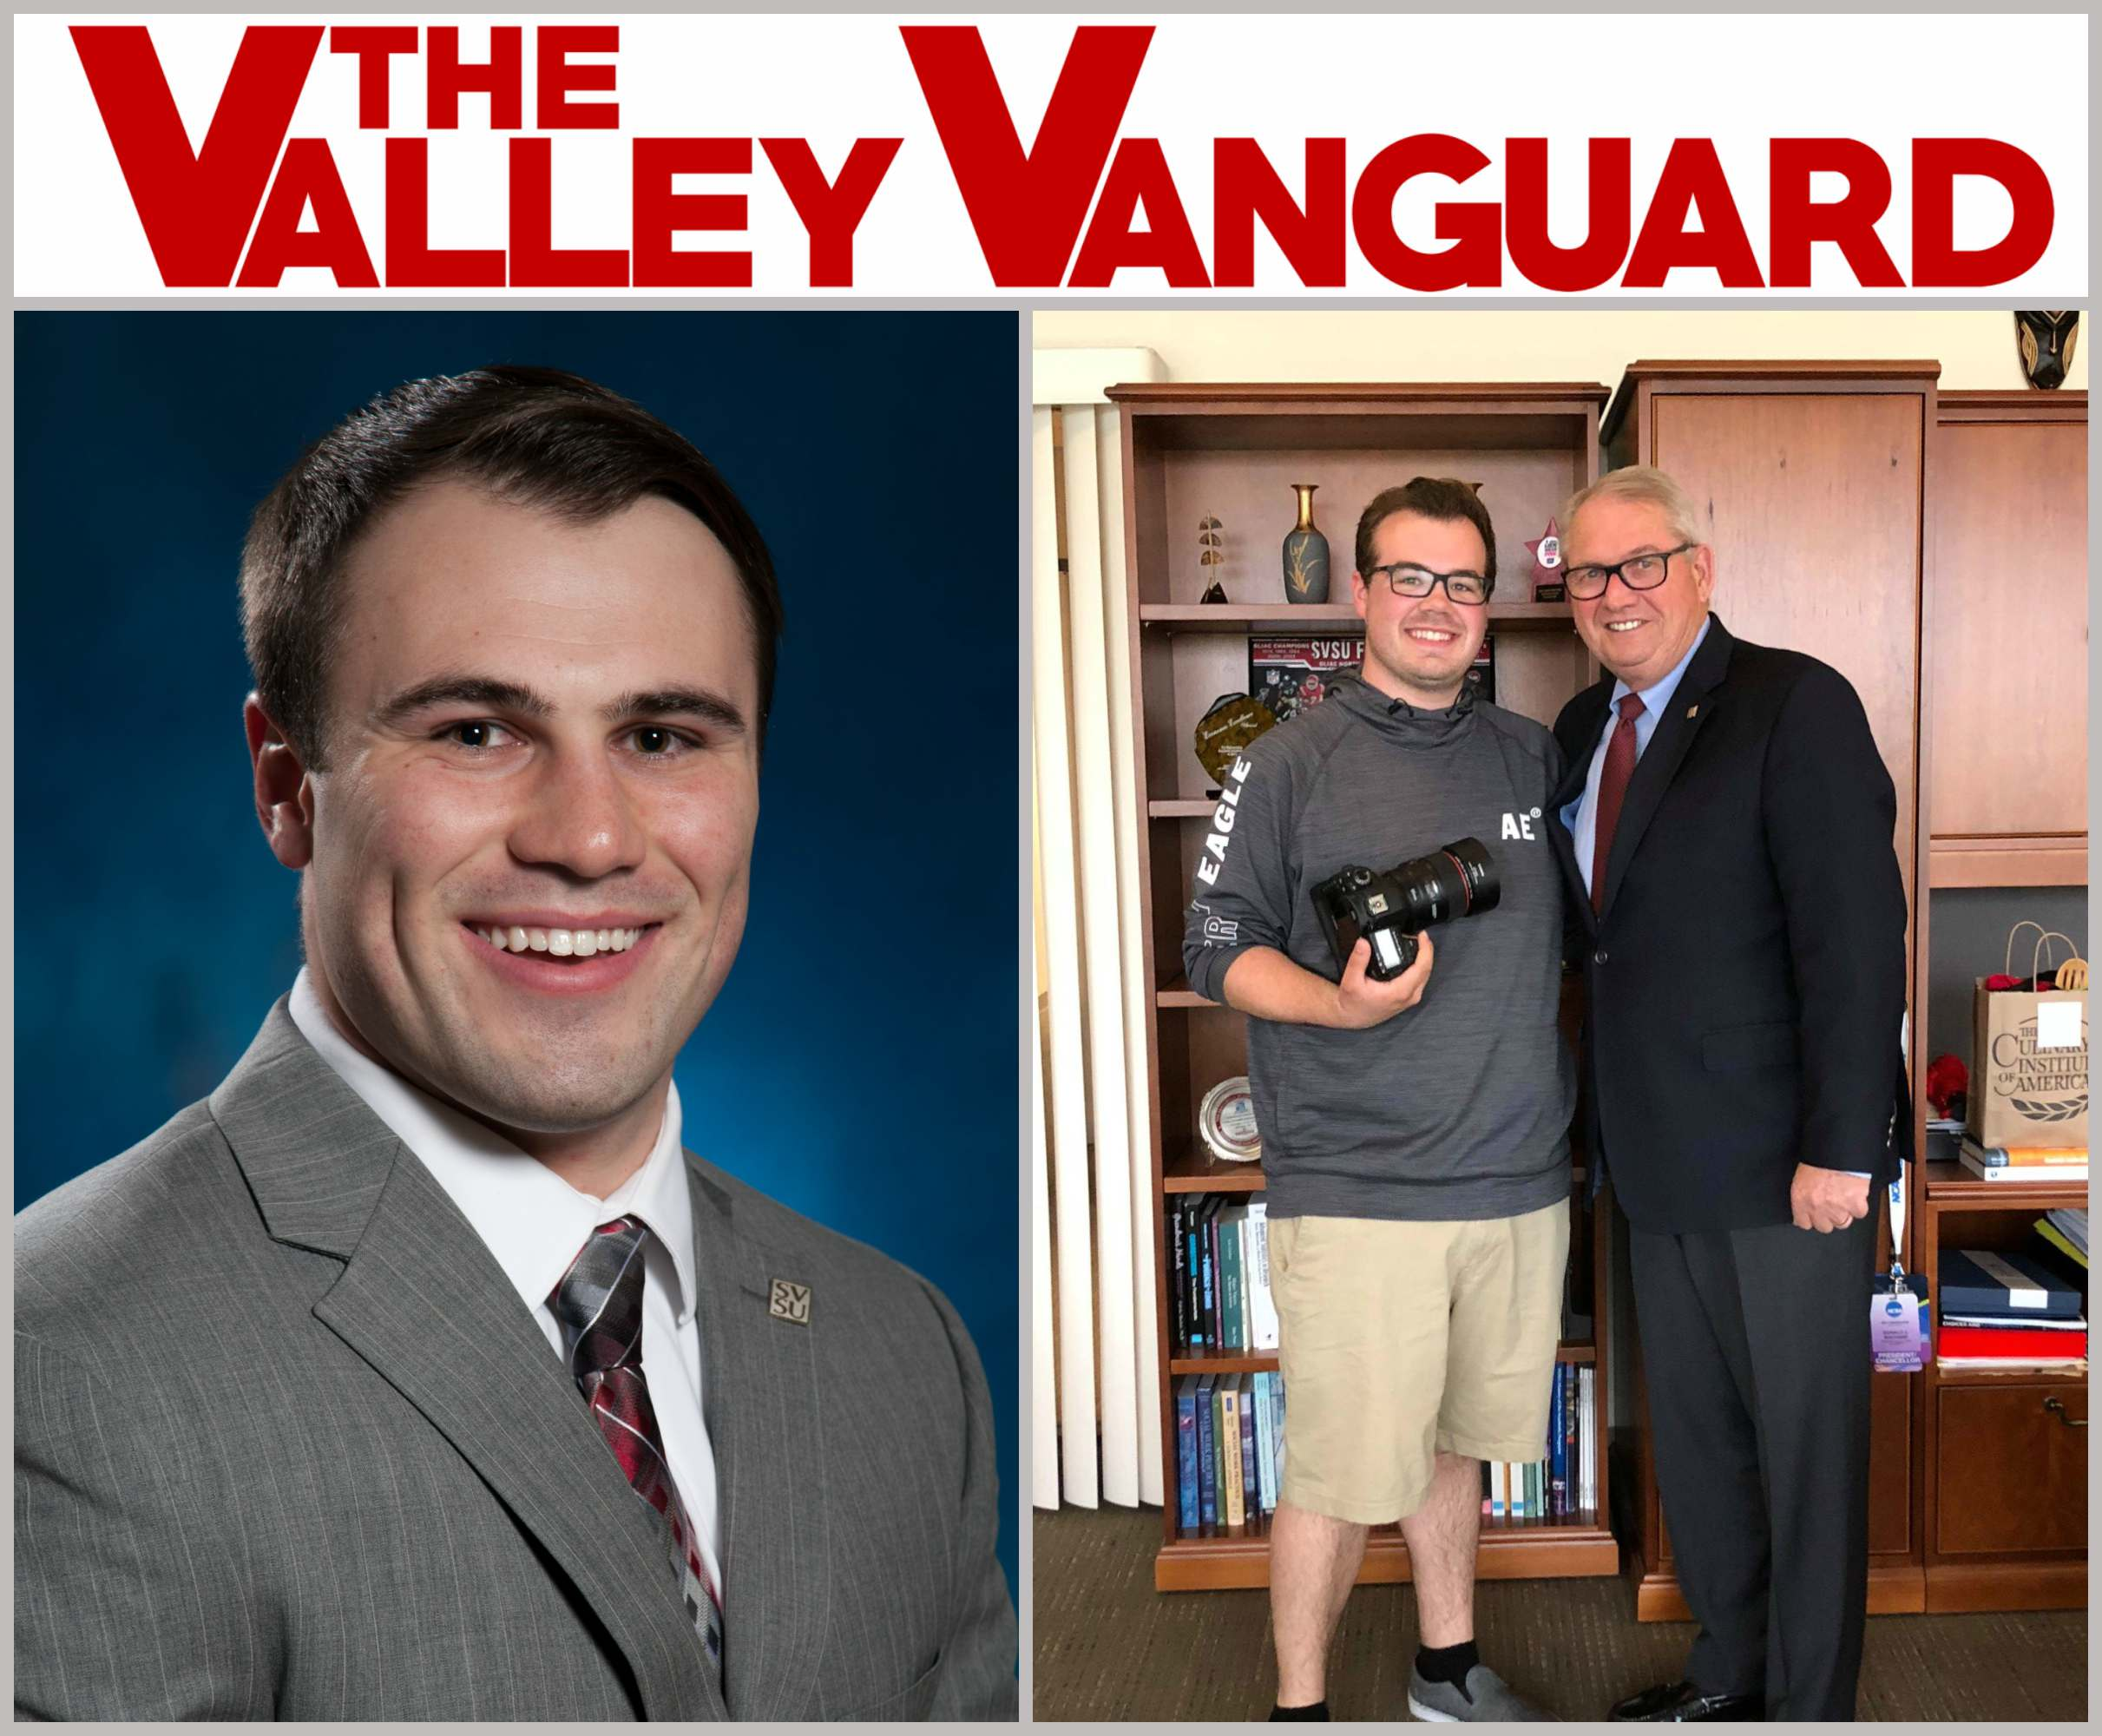 Collage of images featuring Valley Vanguard logo and students recognized for outstanding achievement being nominated as a top 3 finalist for the best college newspaper award by the Michigan Press Association